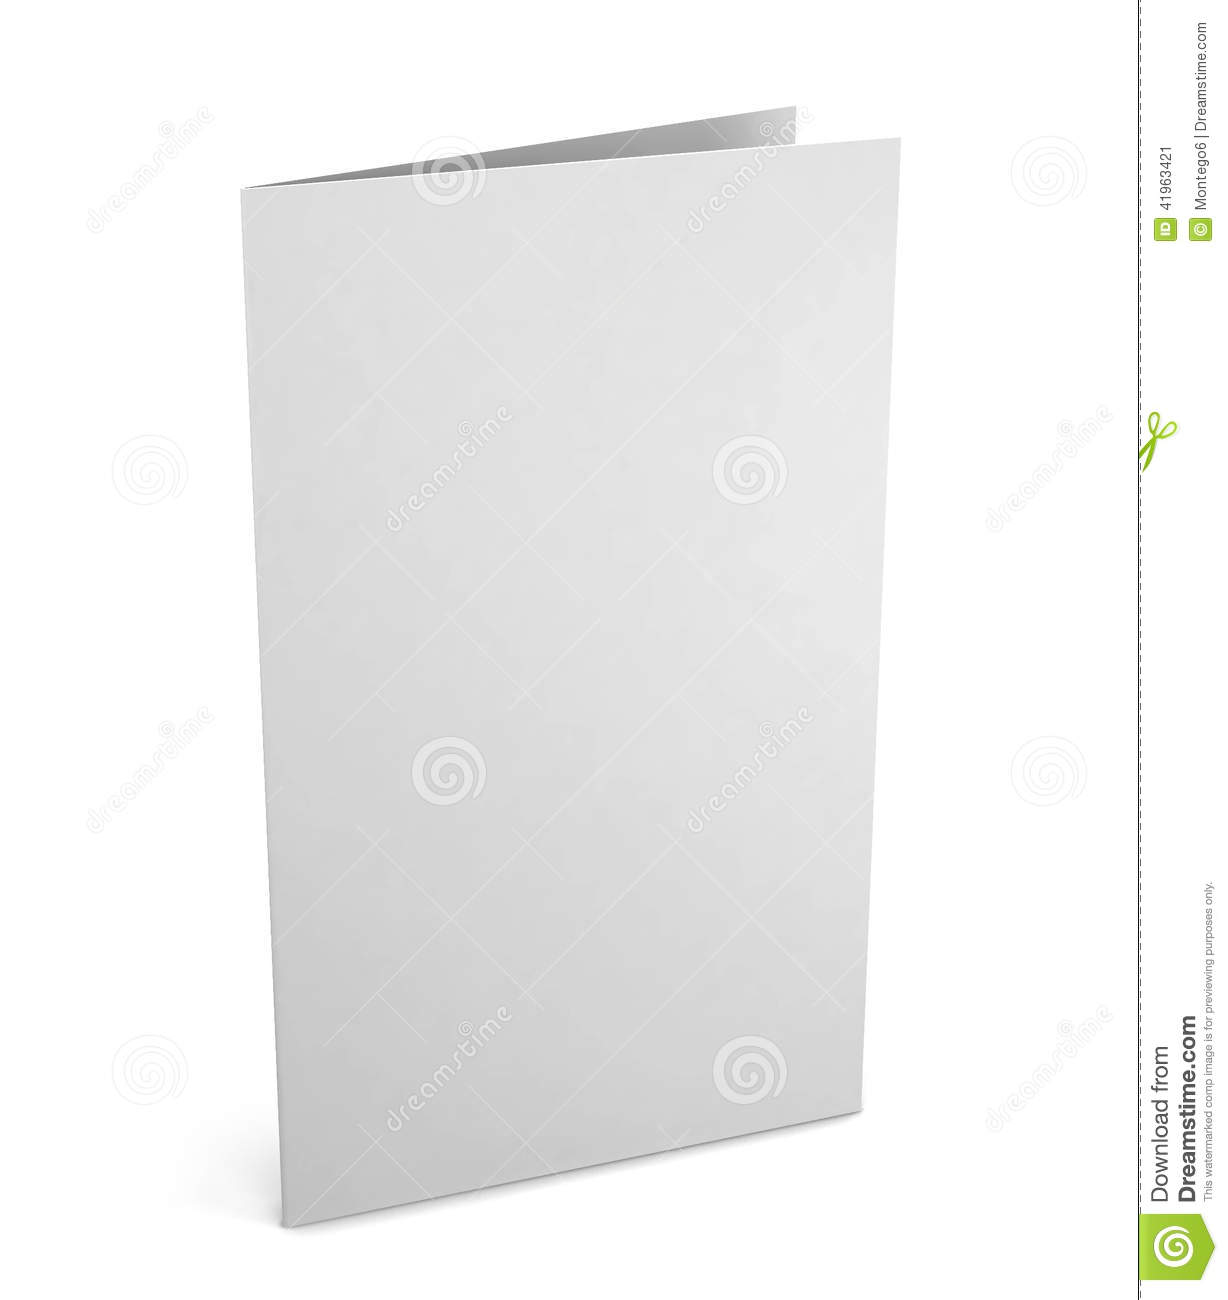 Blank greeting card stock illustration illustration of page 41963421 download blank greeting card stock illustration illustration of page 41963421 m4hsunfo